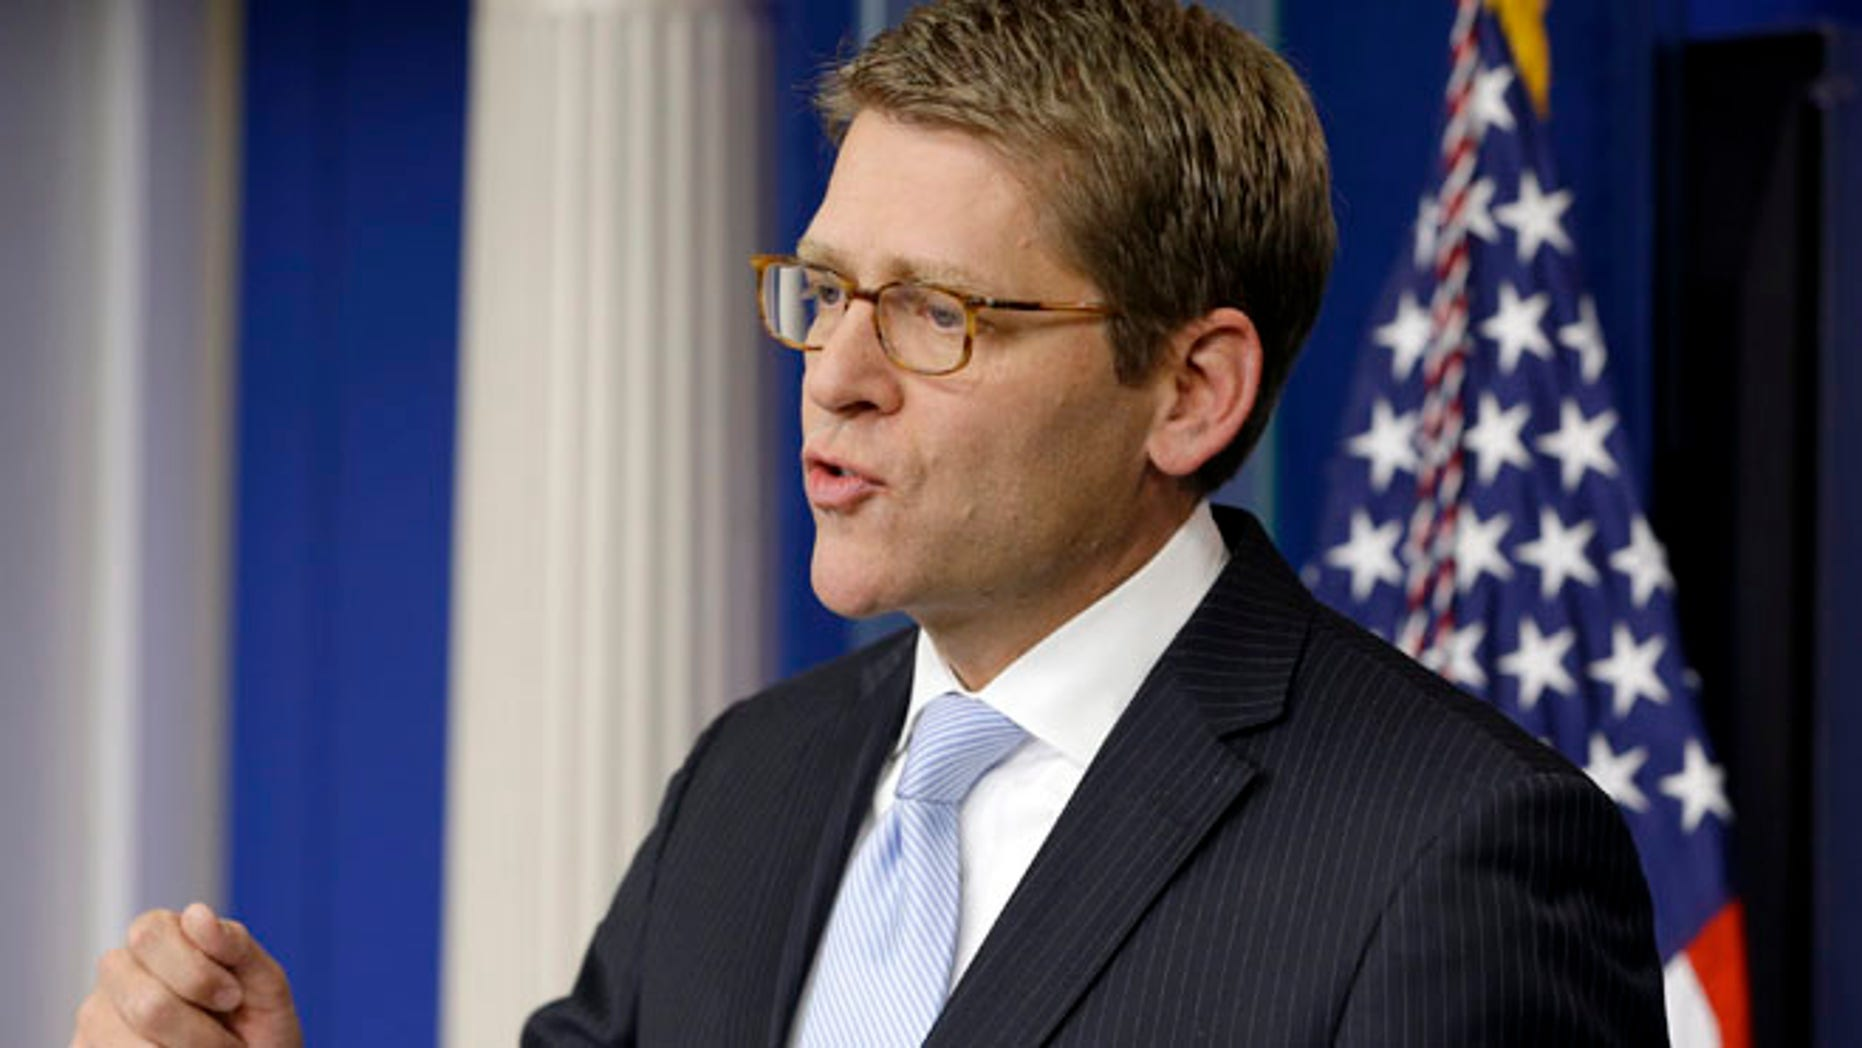 Nov. 9, 2012: White House Press Secretary Jay Carney gestures as he speaks to reporters in the White House briefing room.